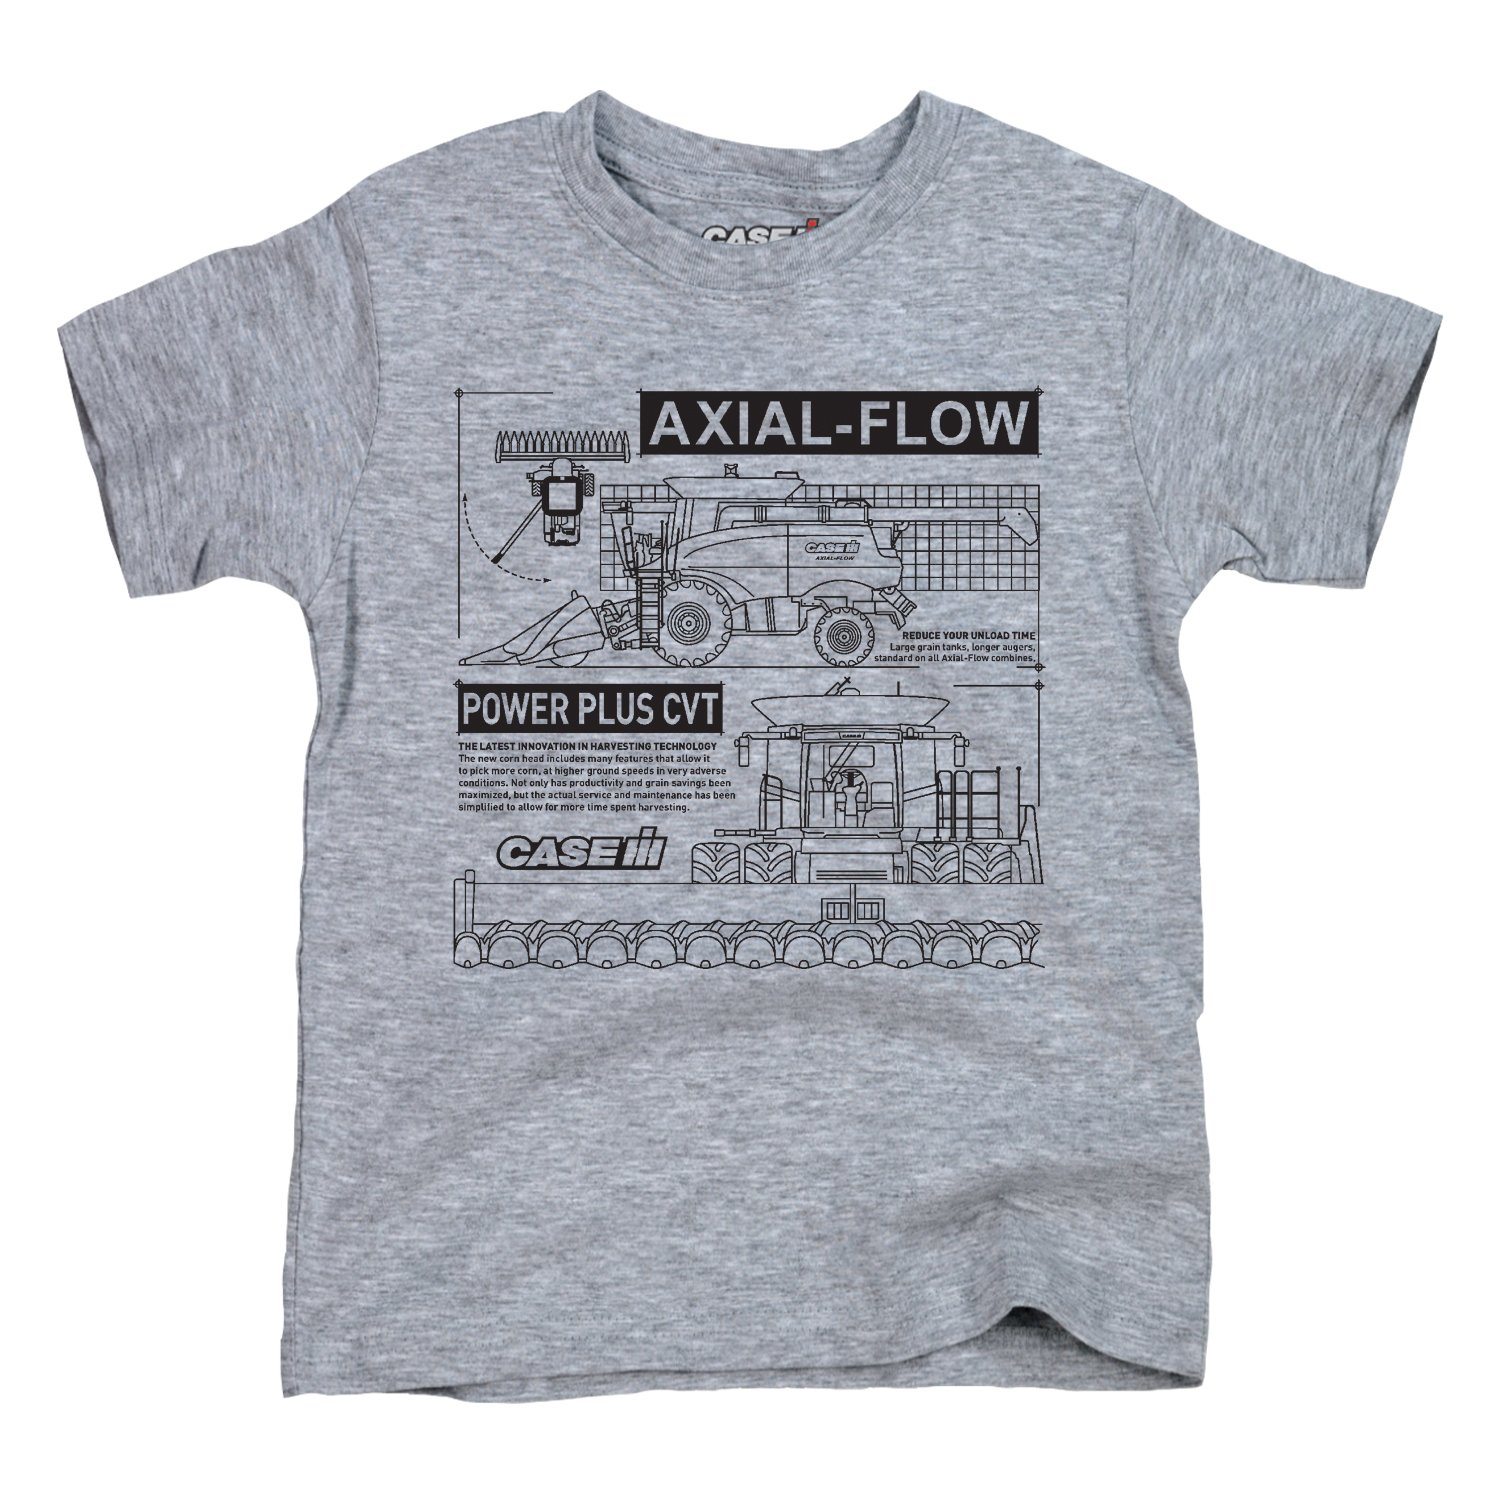 Amazon.com: Axial Flow Diagram CASE IH - Youth Short Sleeve Tee: Clothing